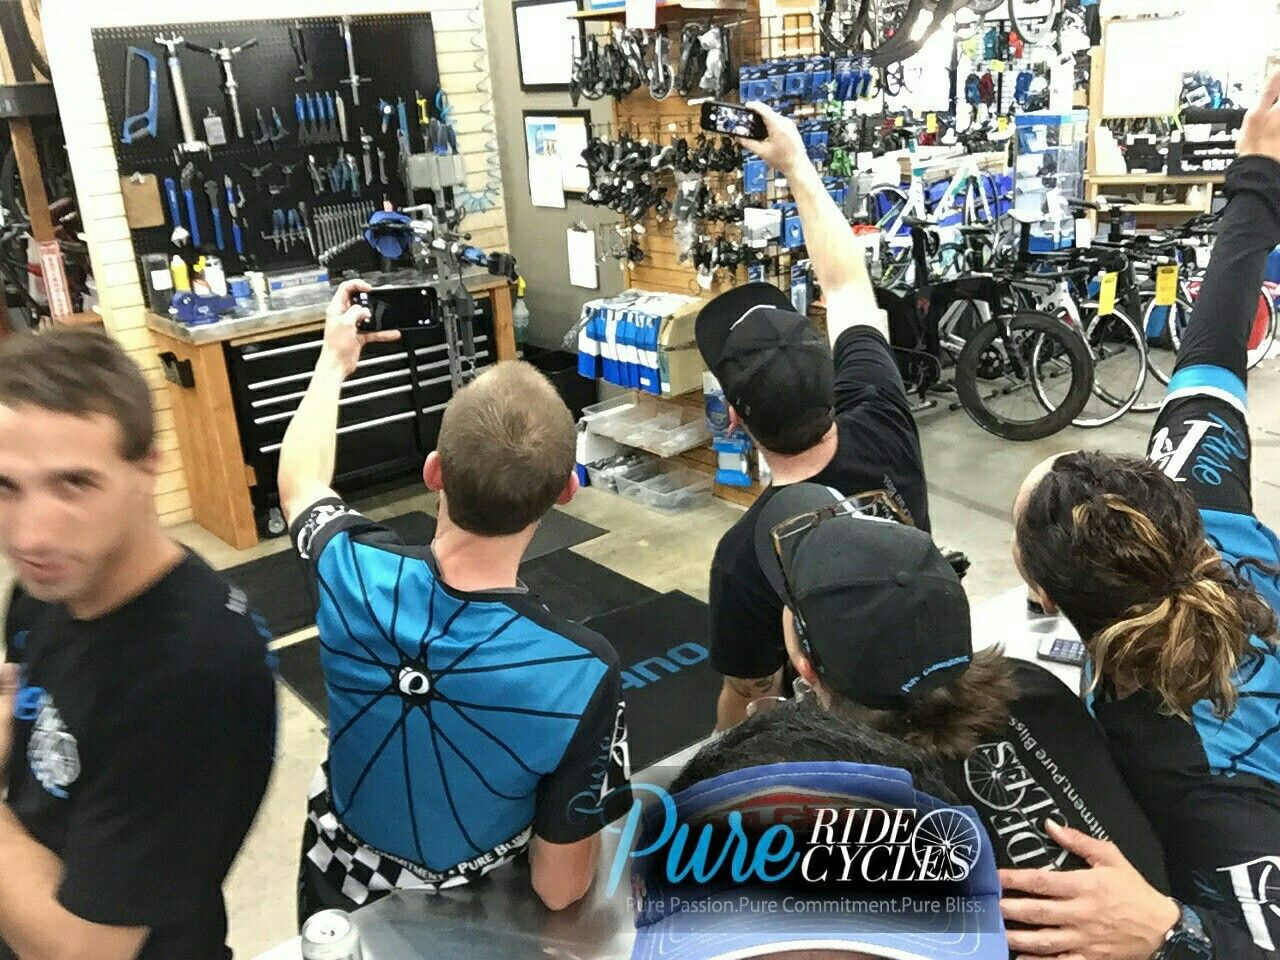 Shameless selfie good bye, to a lovely Easter weekend.  We appreciate all that passed through our doors. . #purepassion #purecommitment #purebliss #pureridecycles 2017